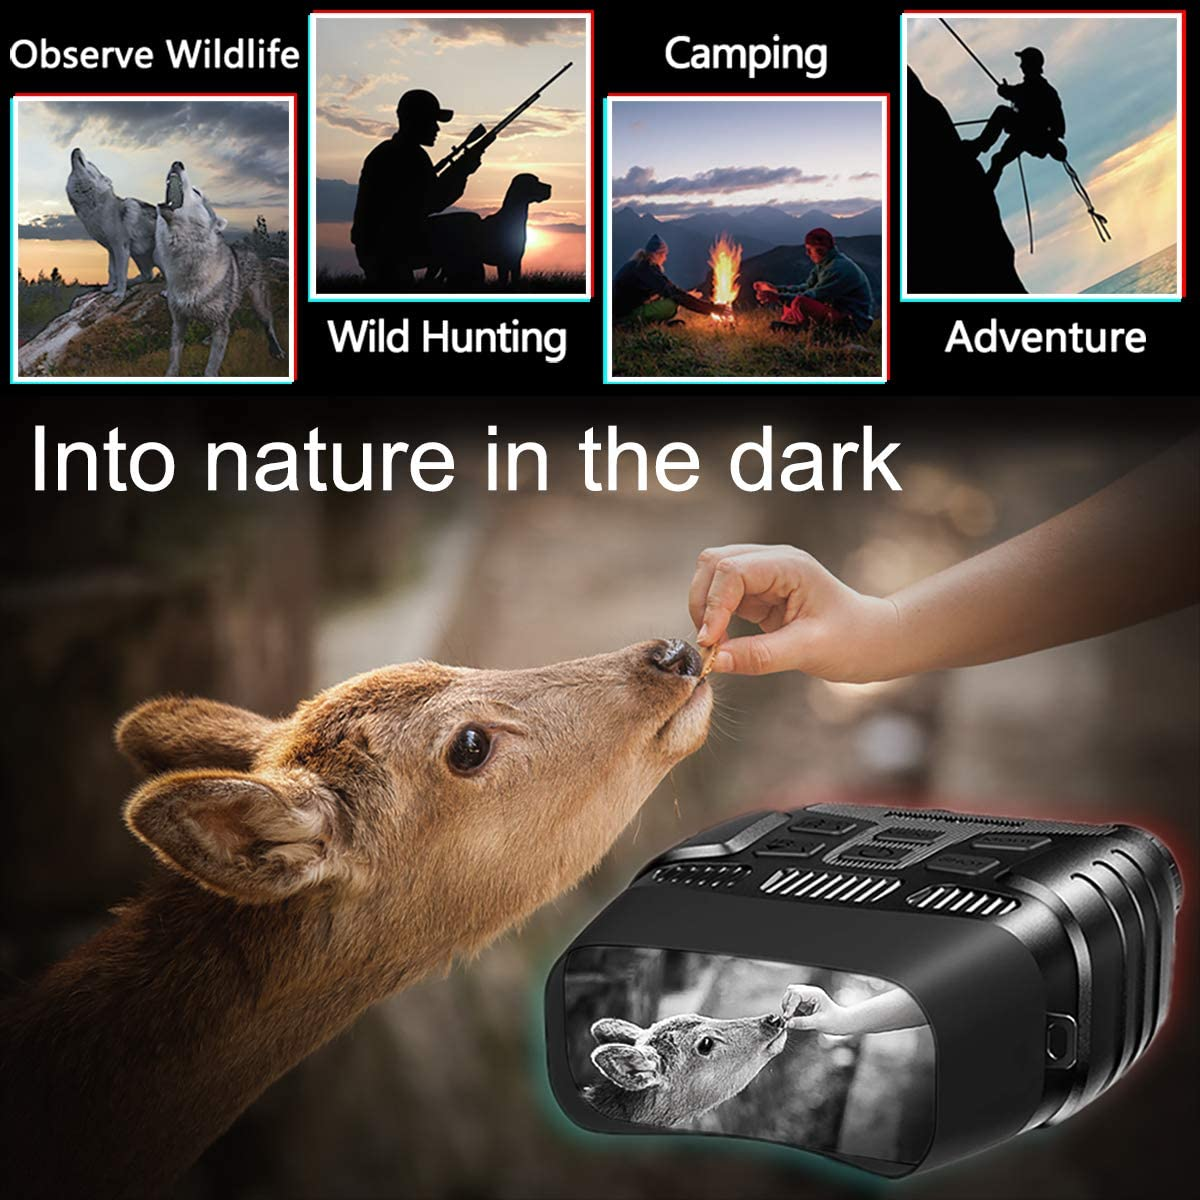 Night Vision Binoculars Infrared Digital 960P Video Night Vision Scopes 2 31 Inch Colorful Display Goggles Device for Hunting